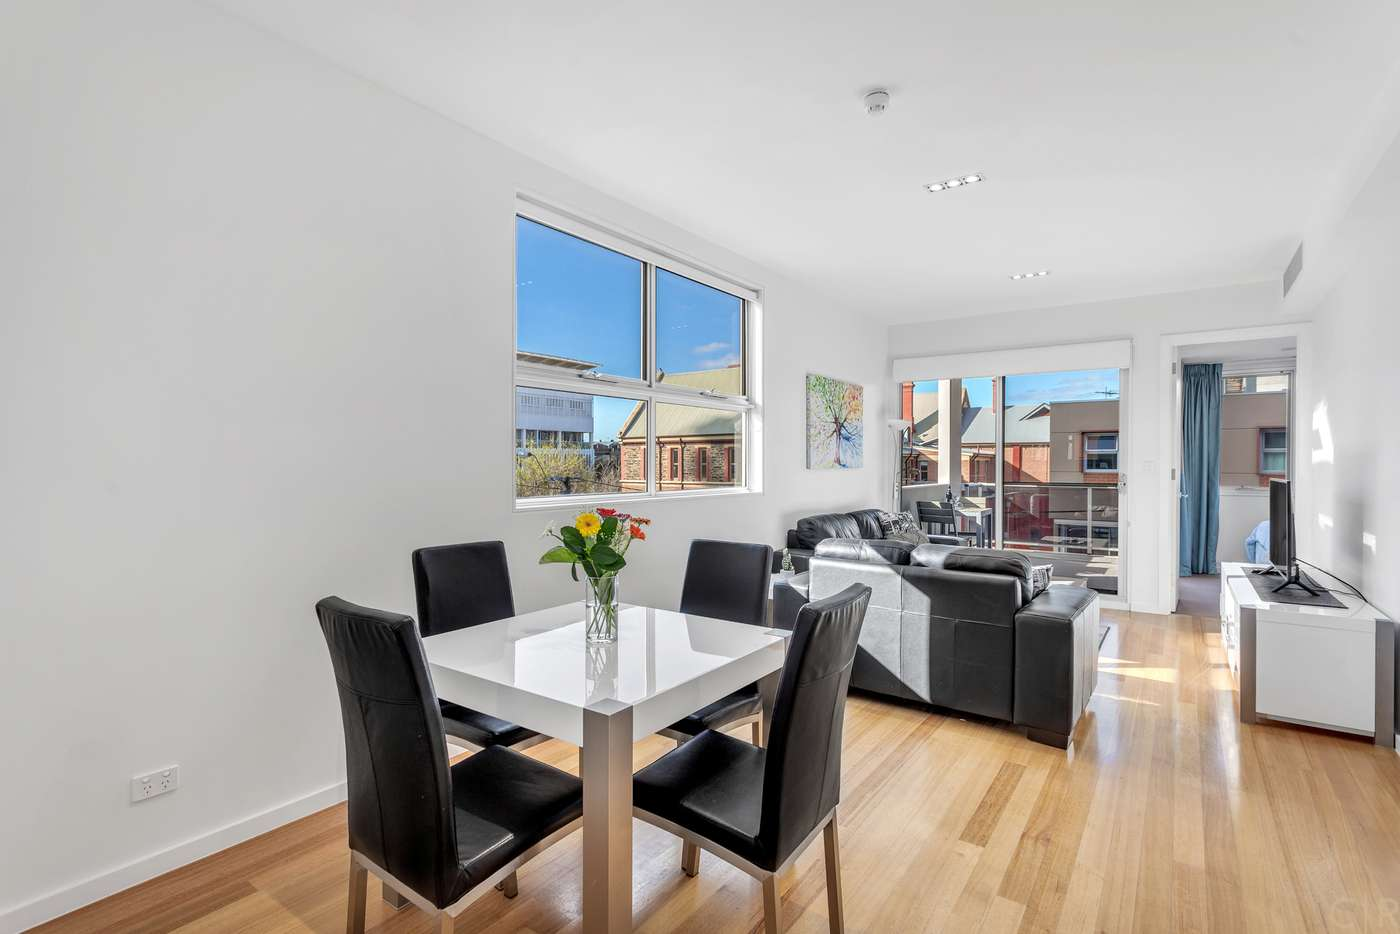 Fifth view of Homely apartment listing, 8/11 Daly Street, Adelaide SA 5000